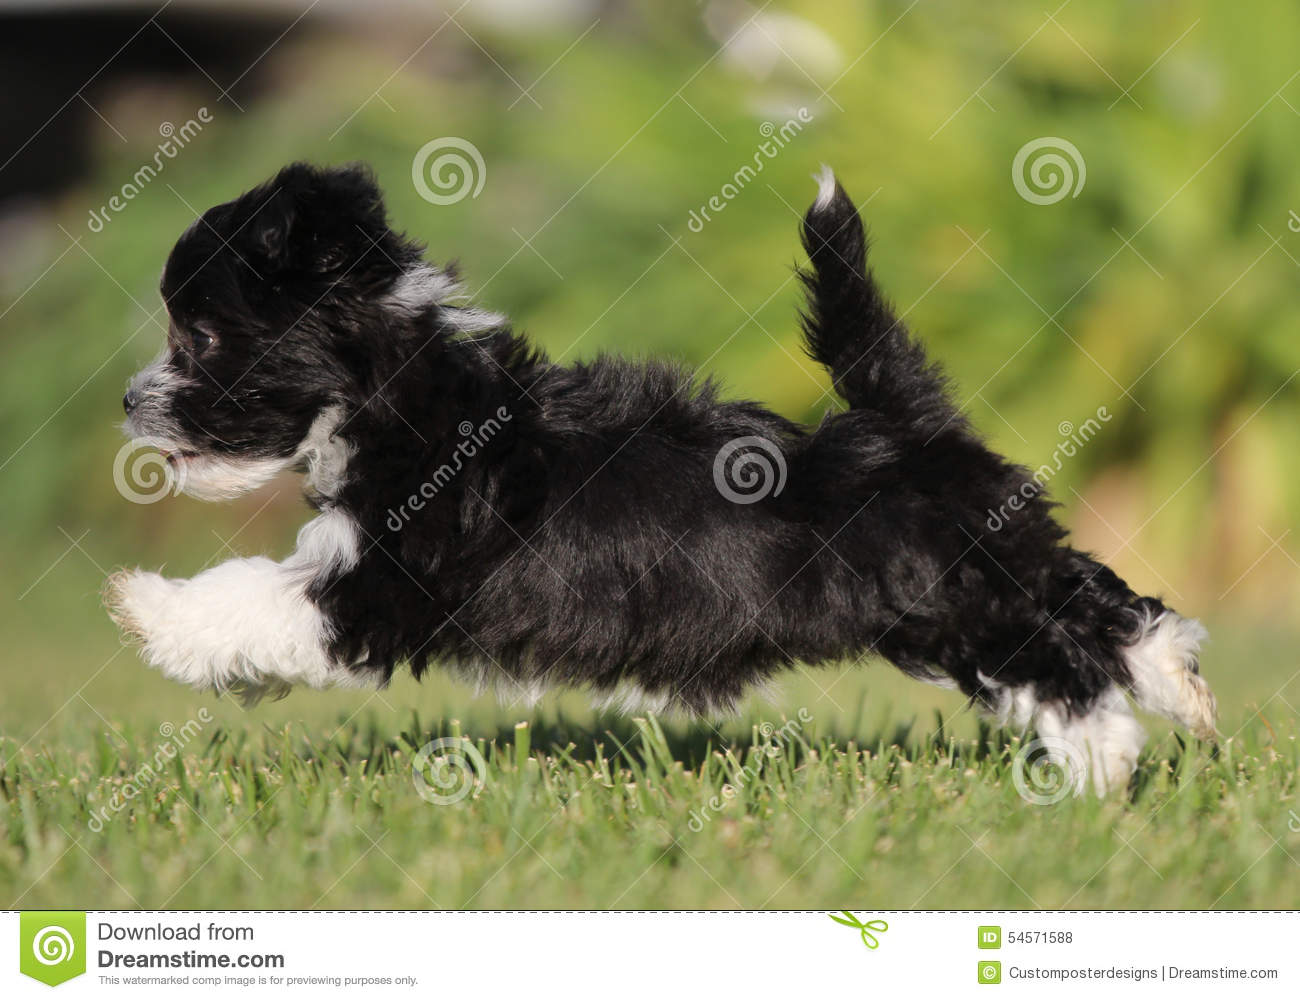 Download A Puppy Running In A Field. Stock Photo - Image of playing, puppy: 54571588